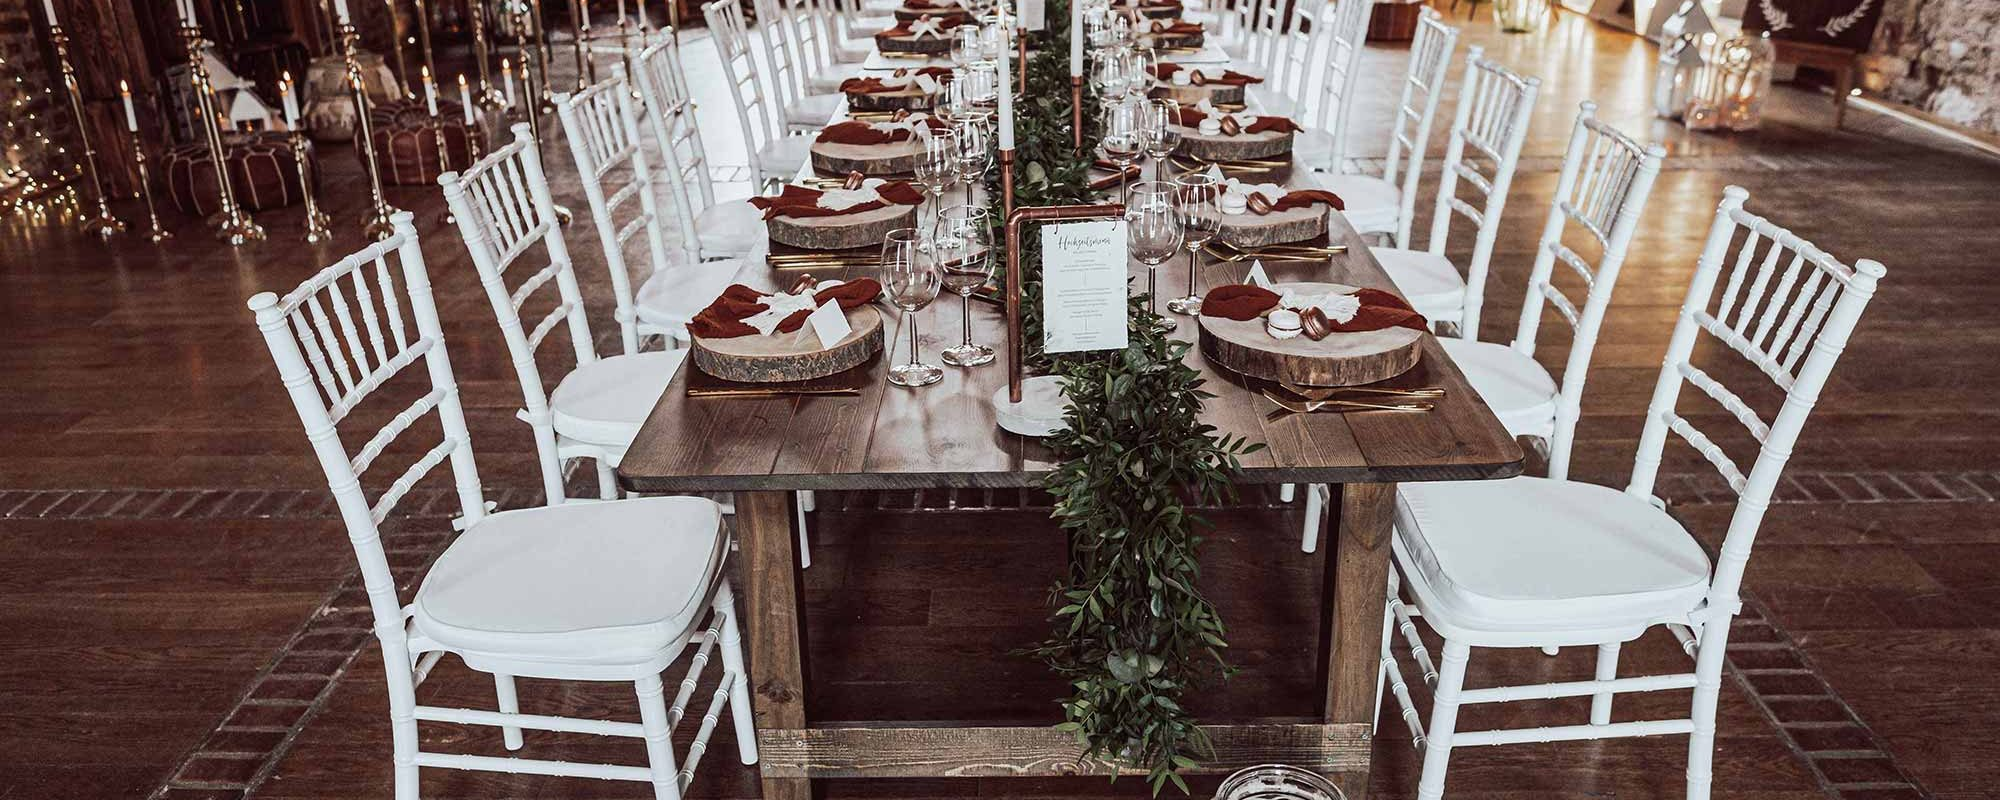 Individuelle Table-Settings by CB-EVENTS™